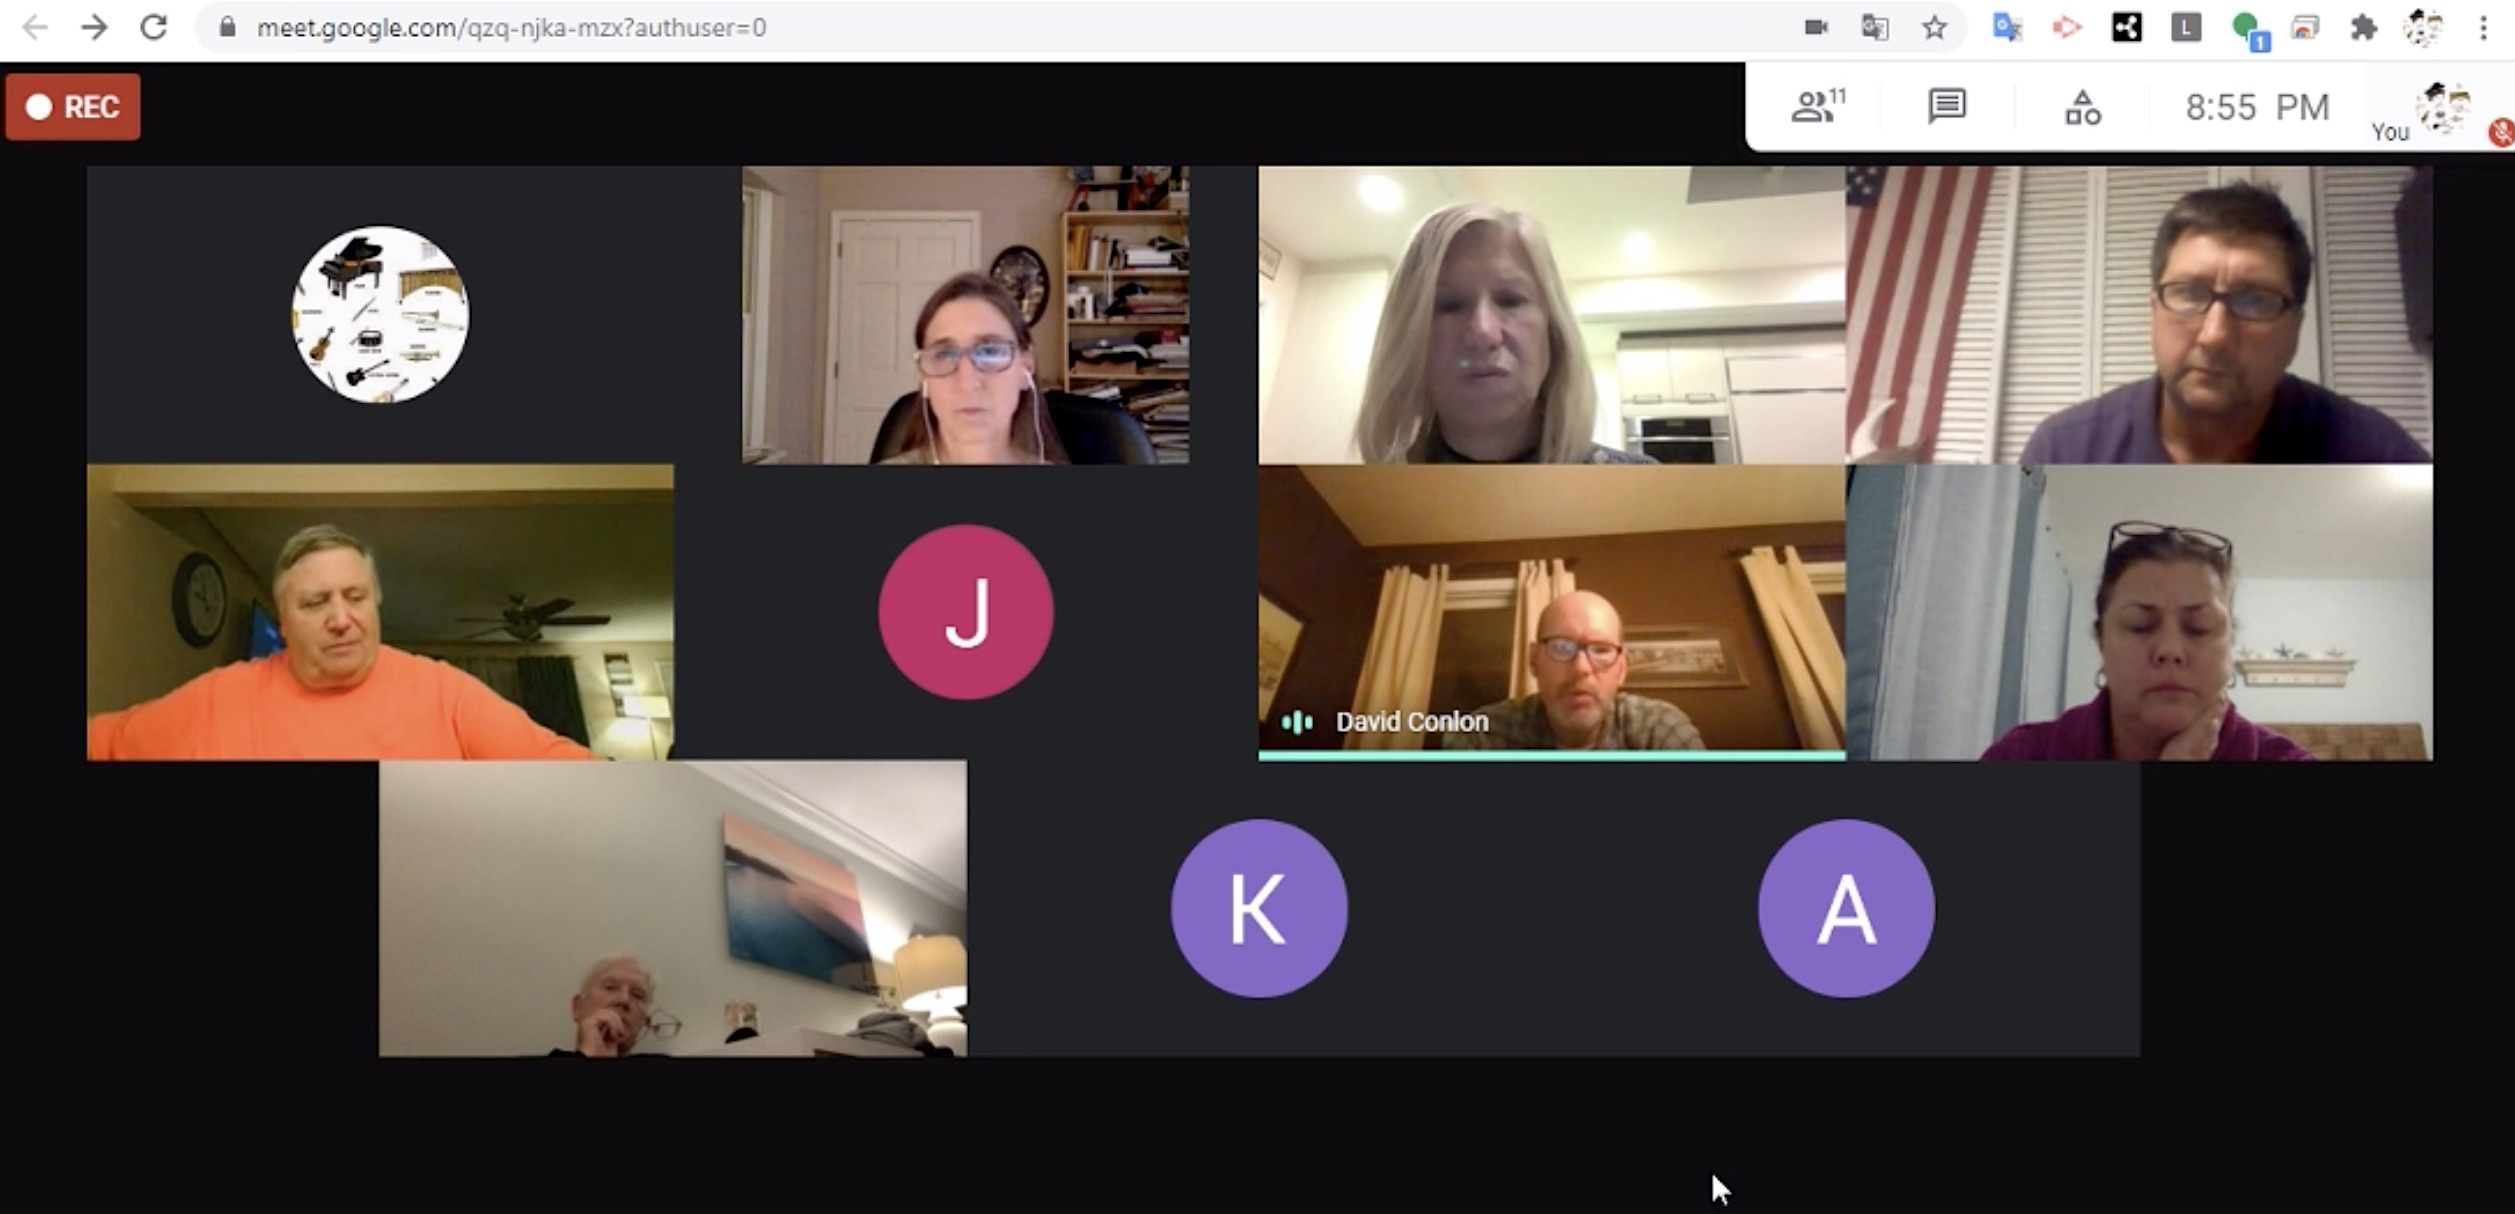 Springs Union Free School District Board of Education members discuss bringing more students back to school in phases, enhancing remote learning with live streaming and how these changes in the hybrid model will affect the budget at a November 2 work session.